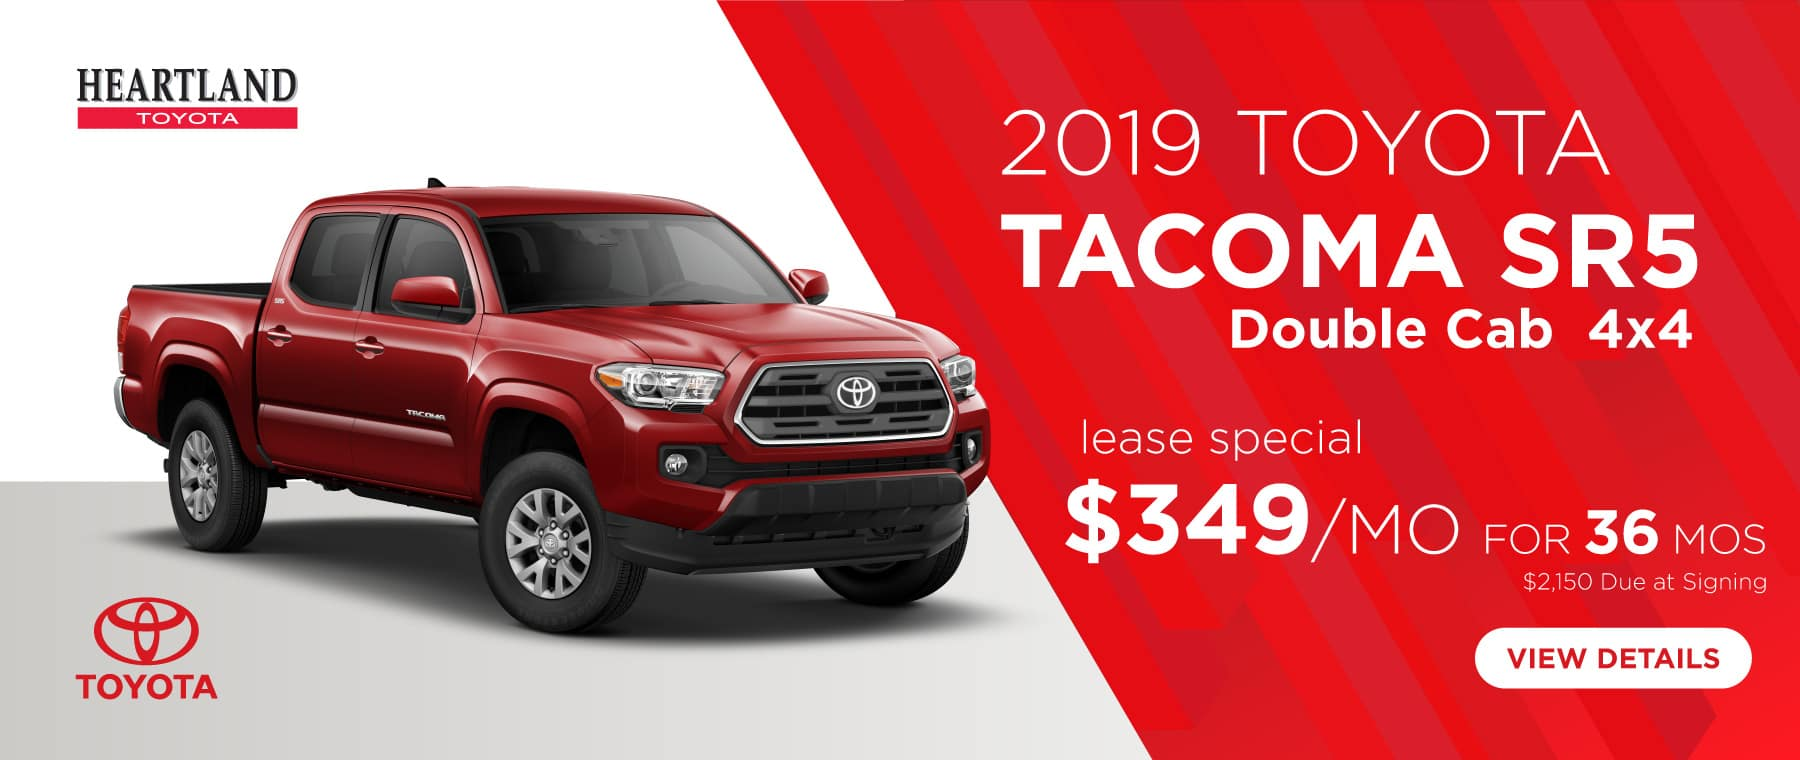 2019 Toyota Tacoma SR5 Double Cab 4x4  $349/mo. For 36 months*